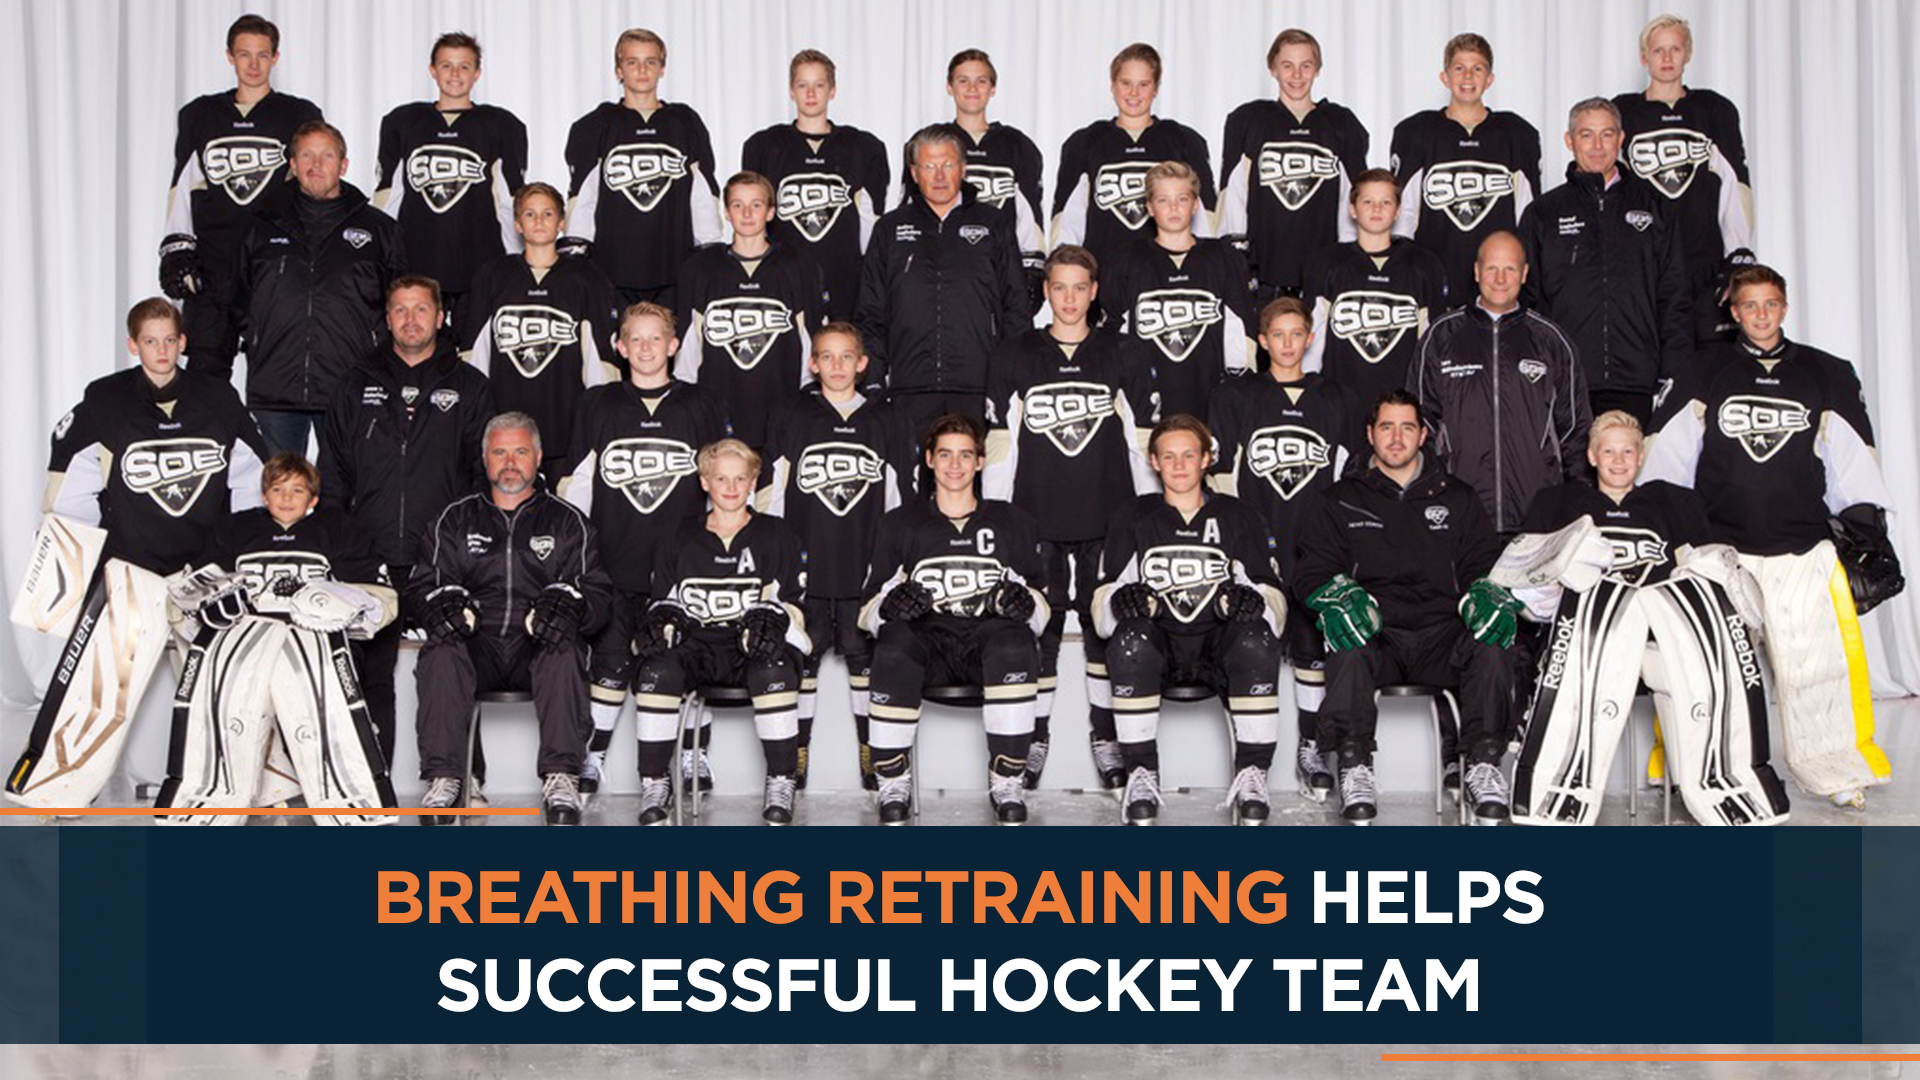 Breathing retraining helps successful hockey team